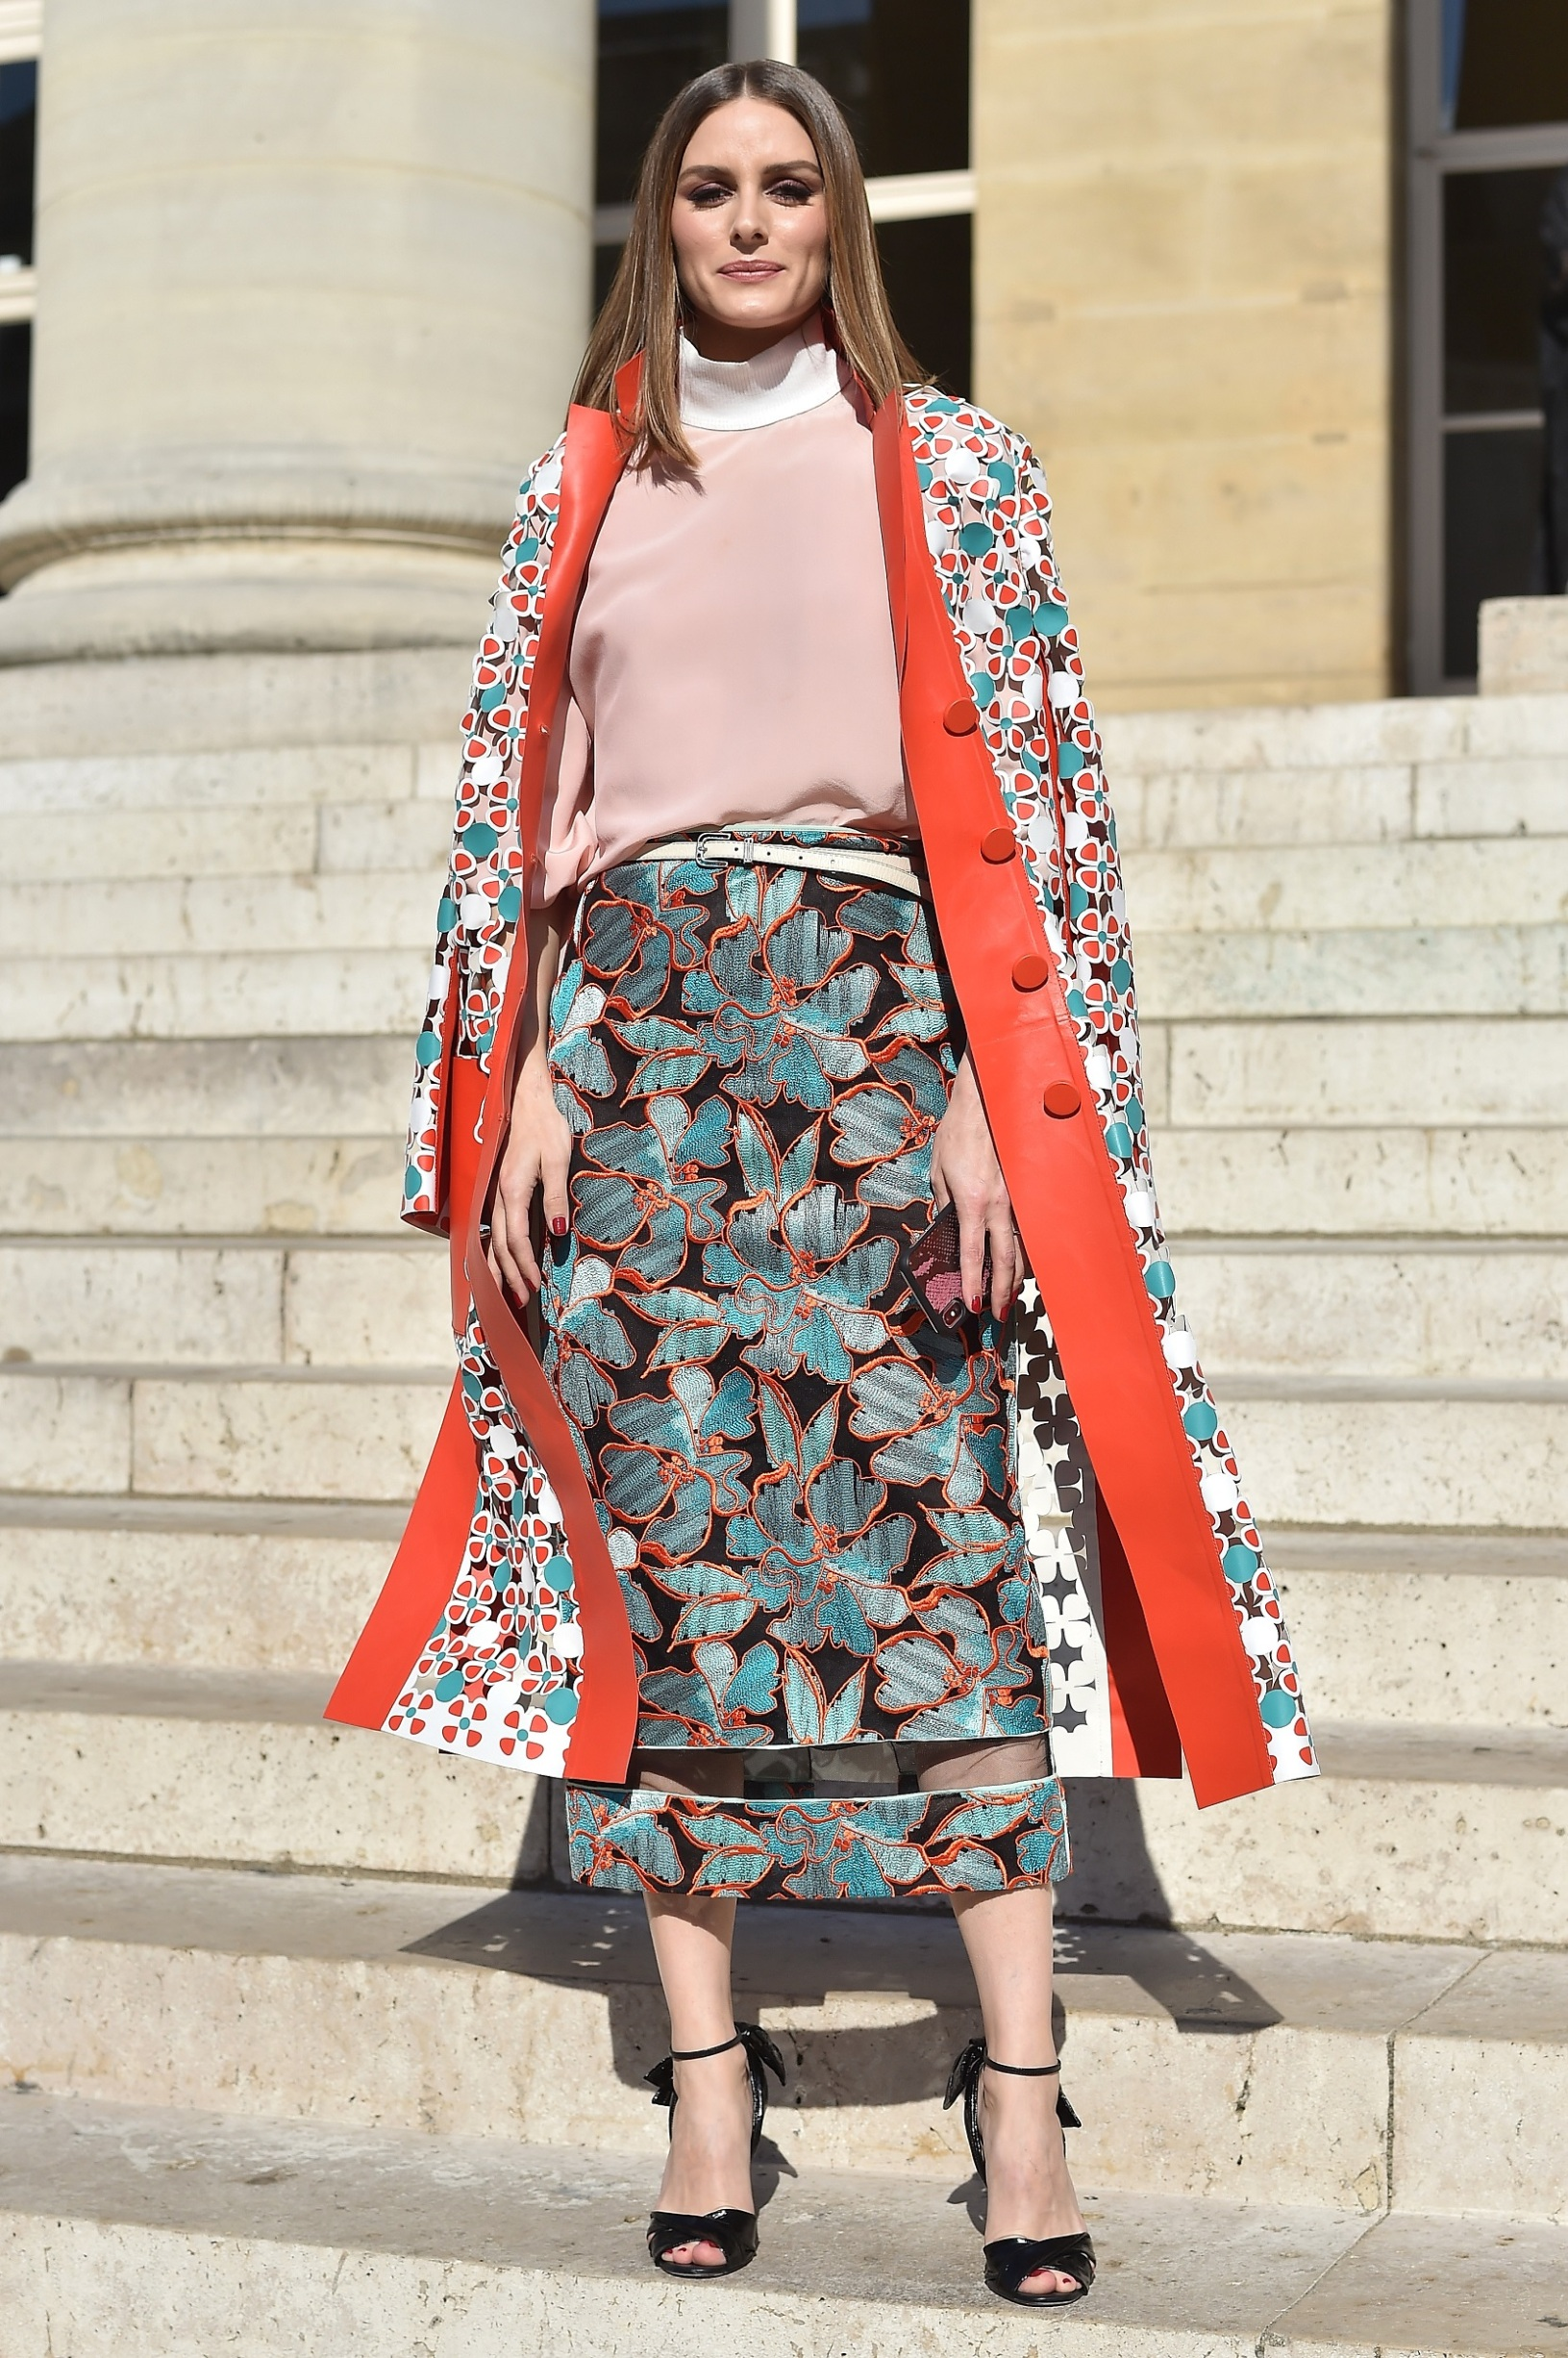 PARIS, FRANCE - JULY 04:  Olivia Palermo attends Fendi Couture during Paris Fashion Week - Haute Couture Fall Winter 2018/2019 - on July 4, 2018 in Paris, France.  (Photo by Jacopo Raule/Getty Images for Fendi)